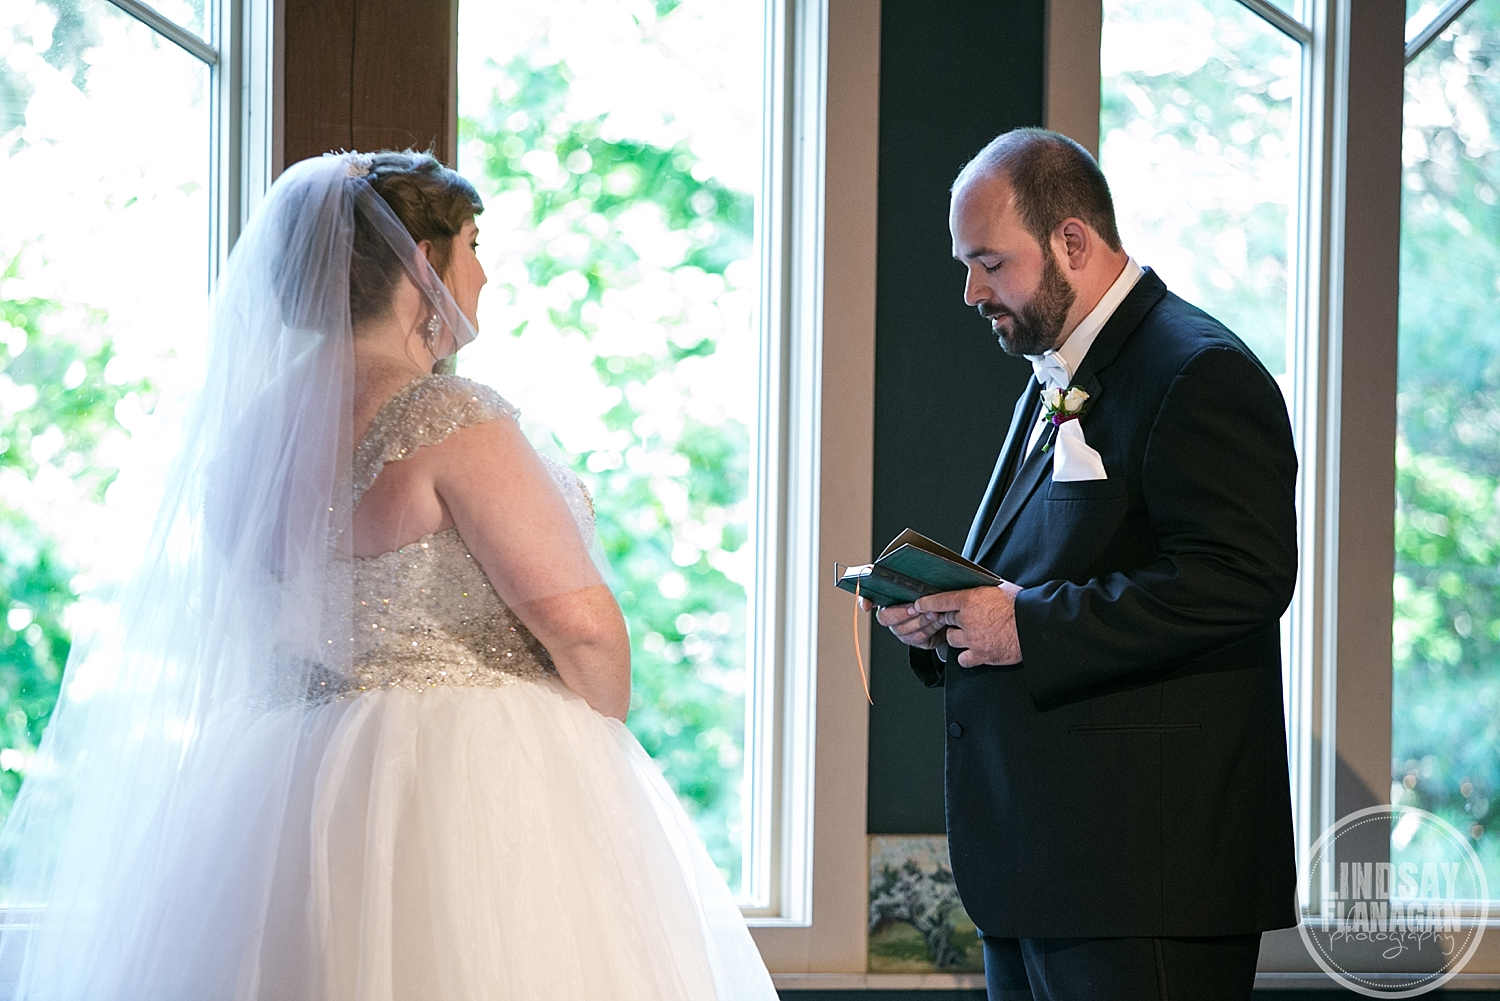 Stone-Mountain-Arts-Center-Maine-Wedding-Ceremony